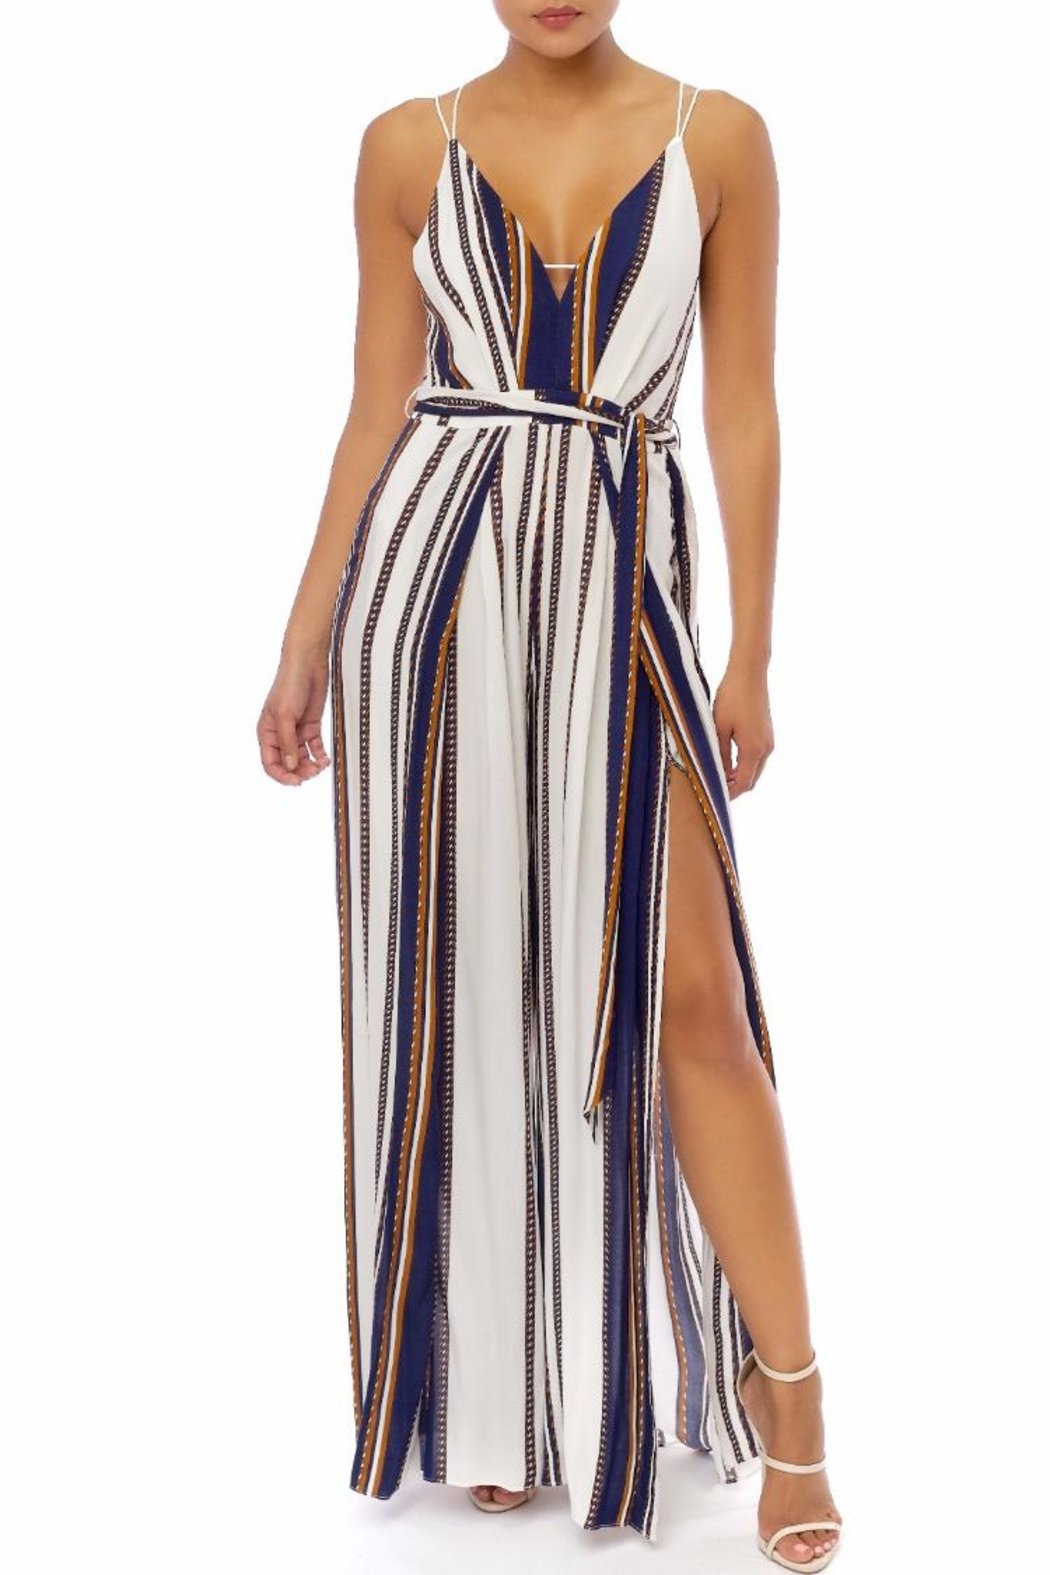 luxxel Stripe Strappy Jumpsuit - Main Image